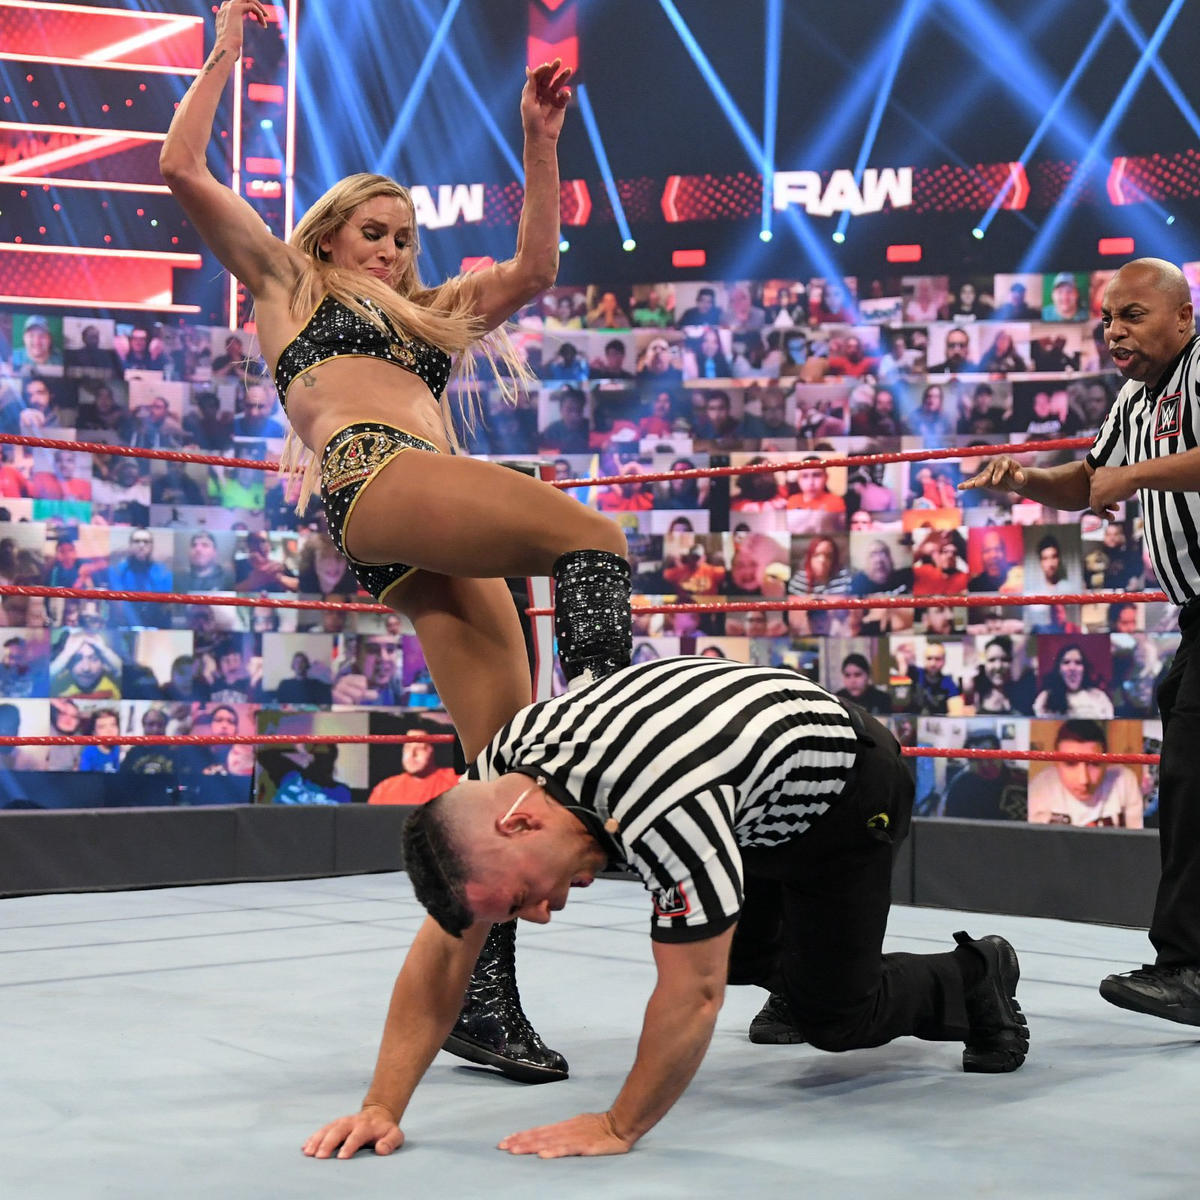 Charlotte Flair Fined $100,000 And Suspended By WWE After Brutal Attack On Raw 3